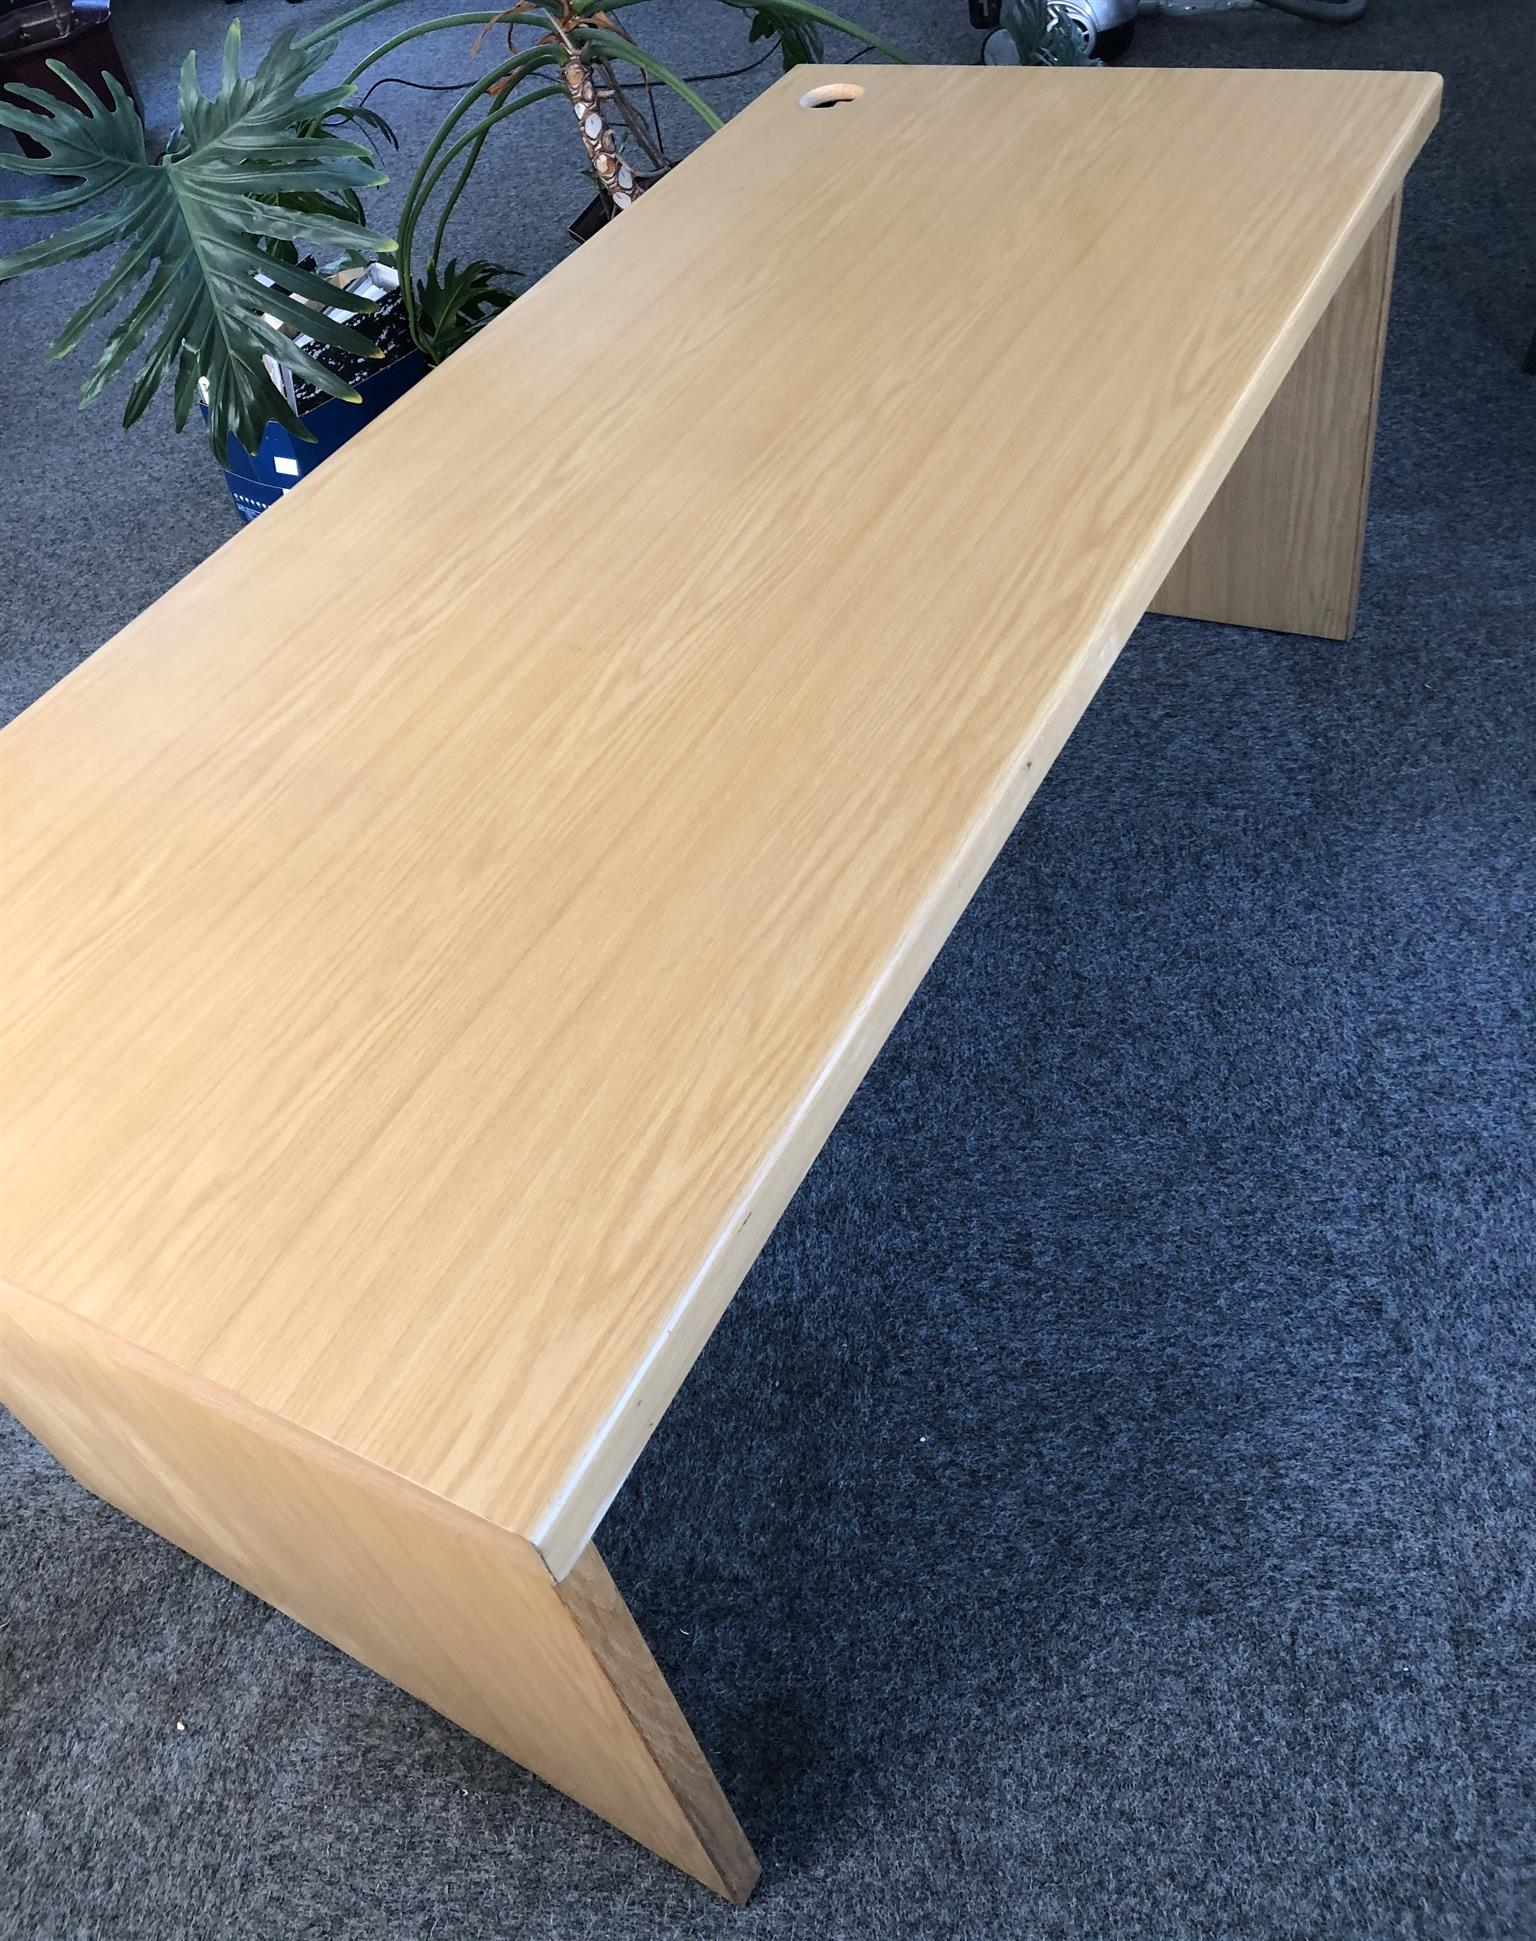 Wooden Office desk Very good condition 1800 mm